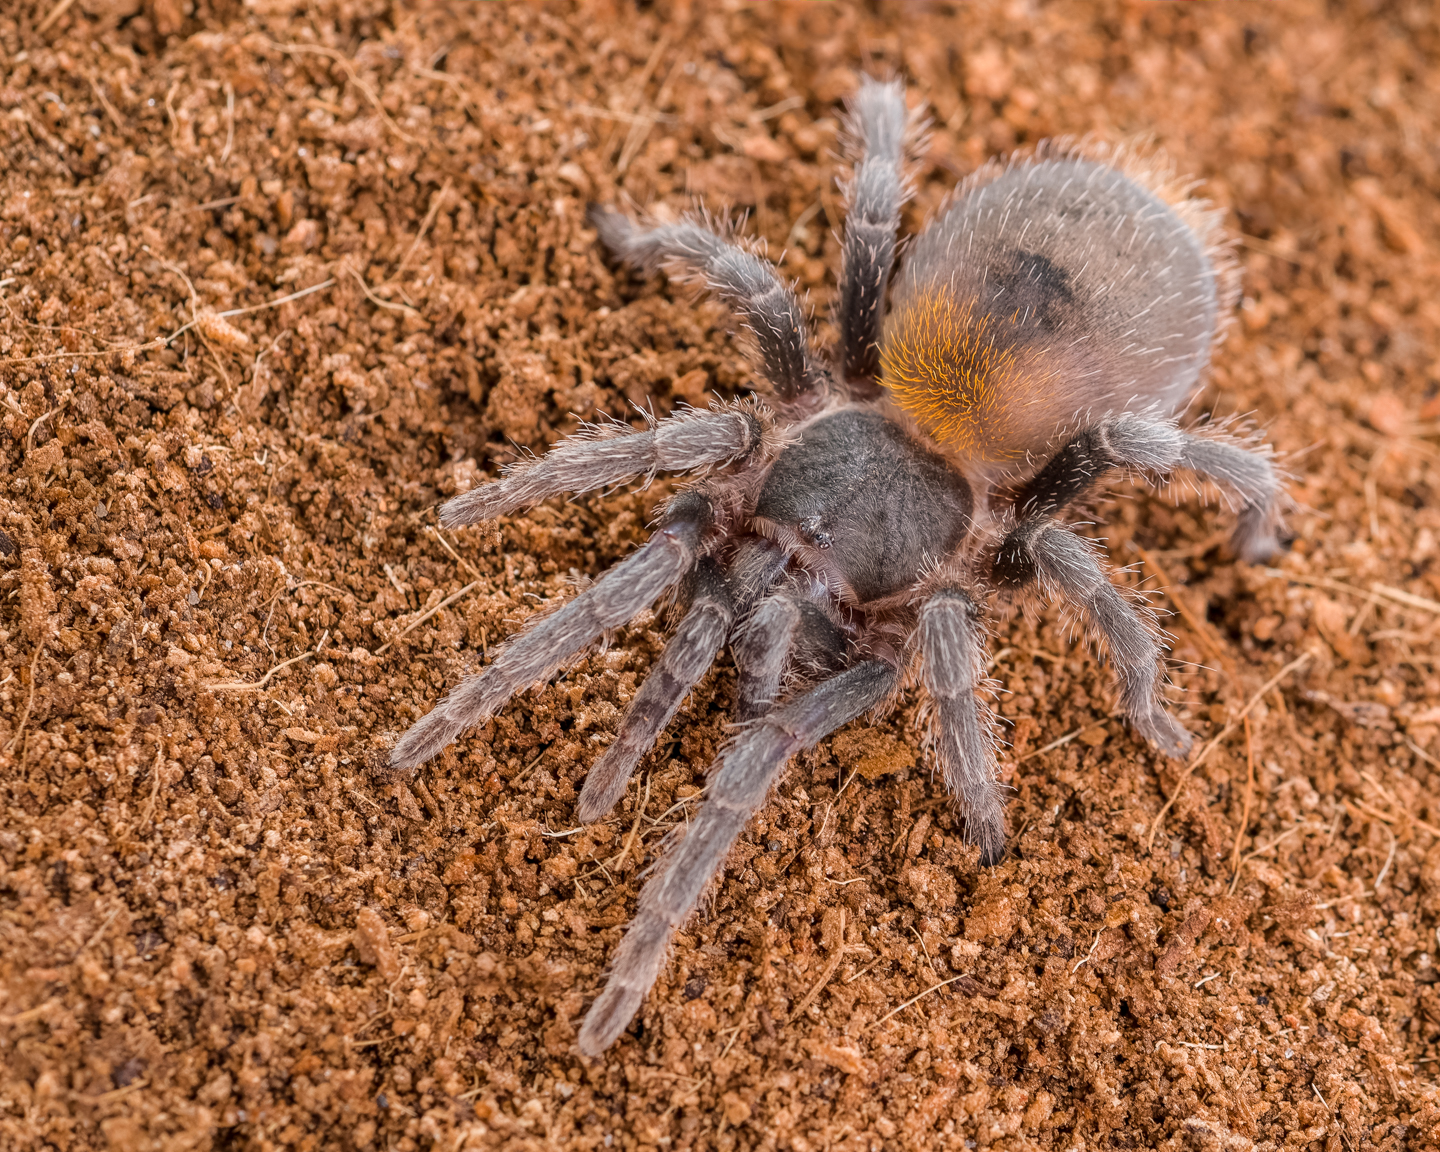 H. chilensis female (Fidget)